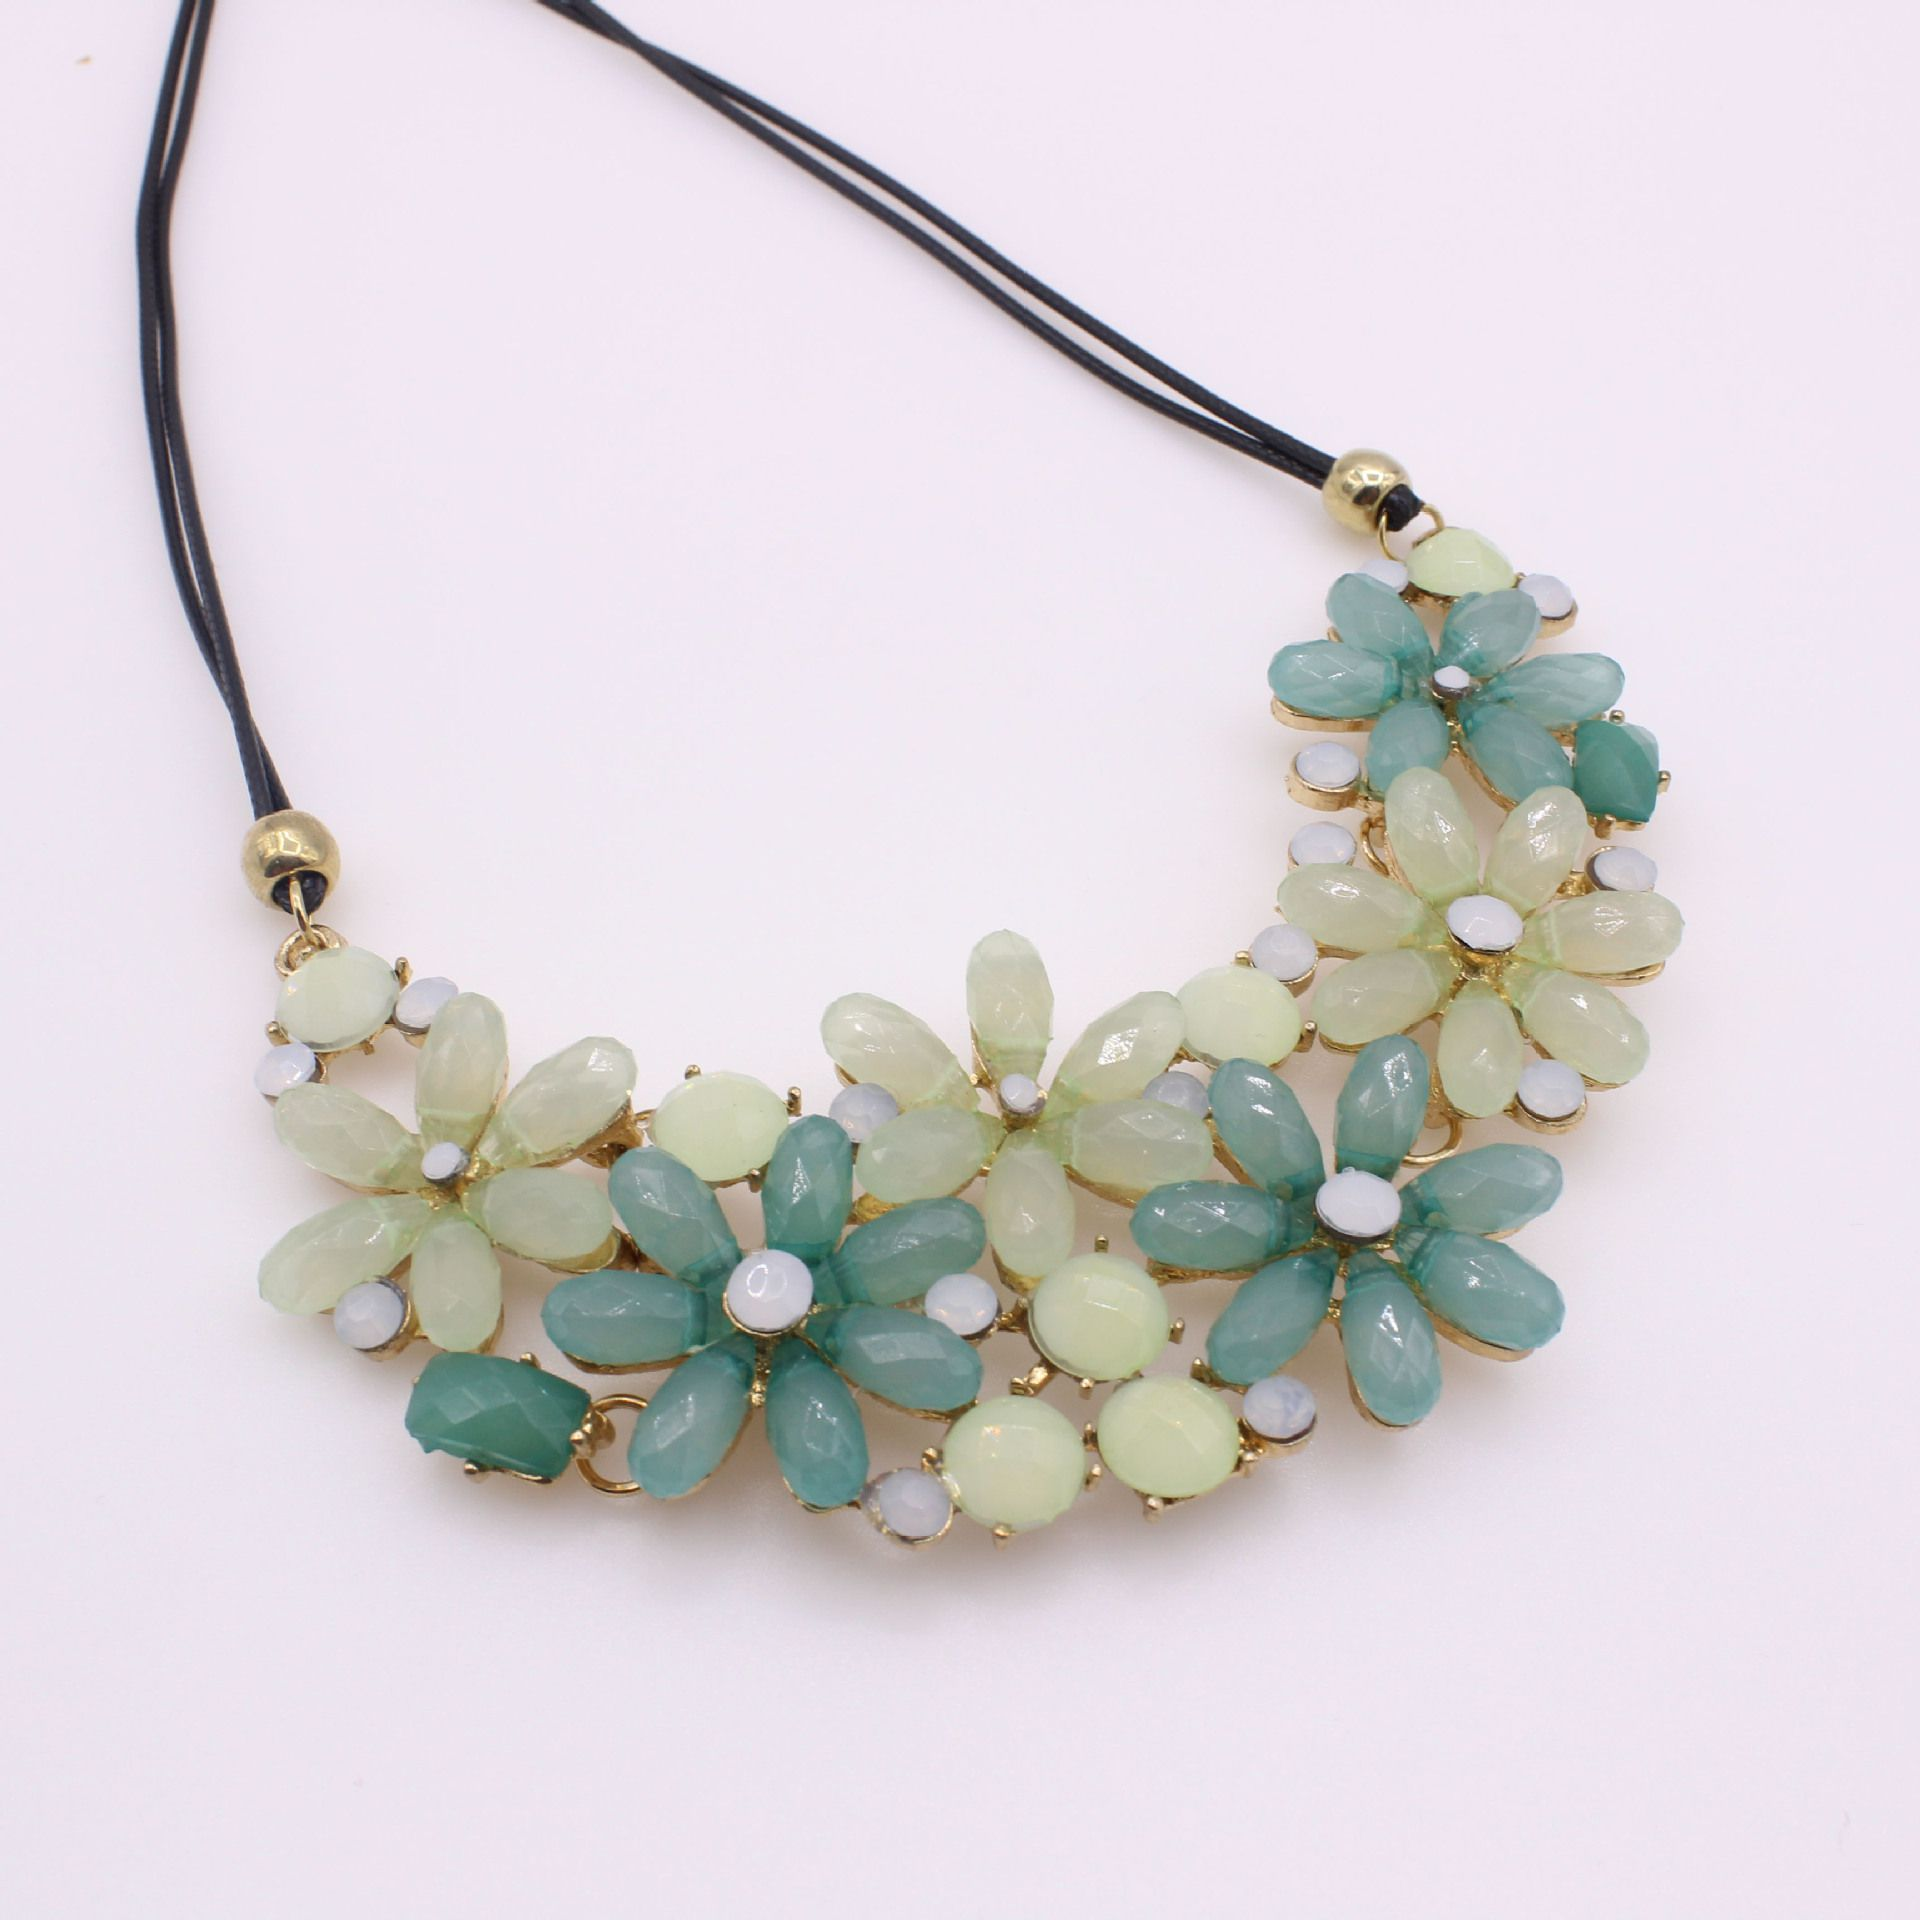 Kamalife Fashion Flowers Blue Necklace Jewelry Accessories